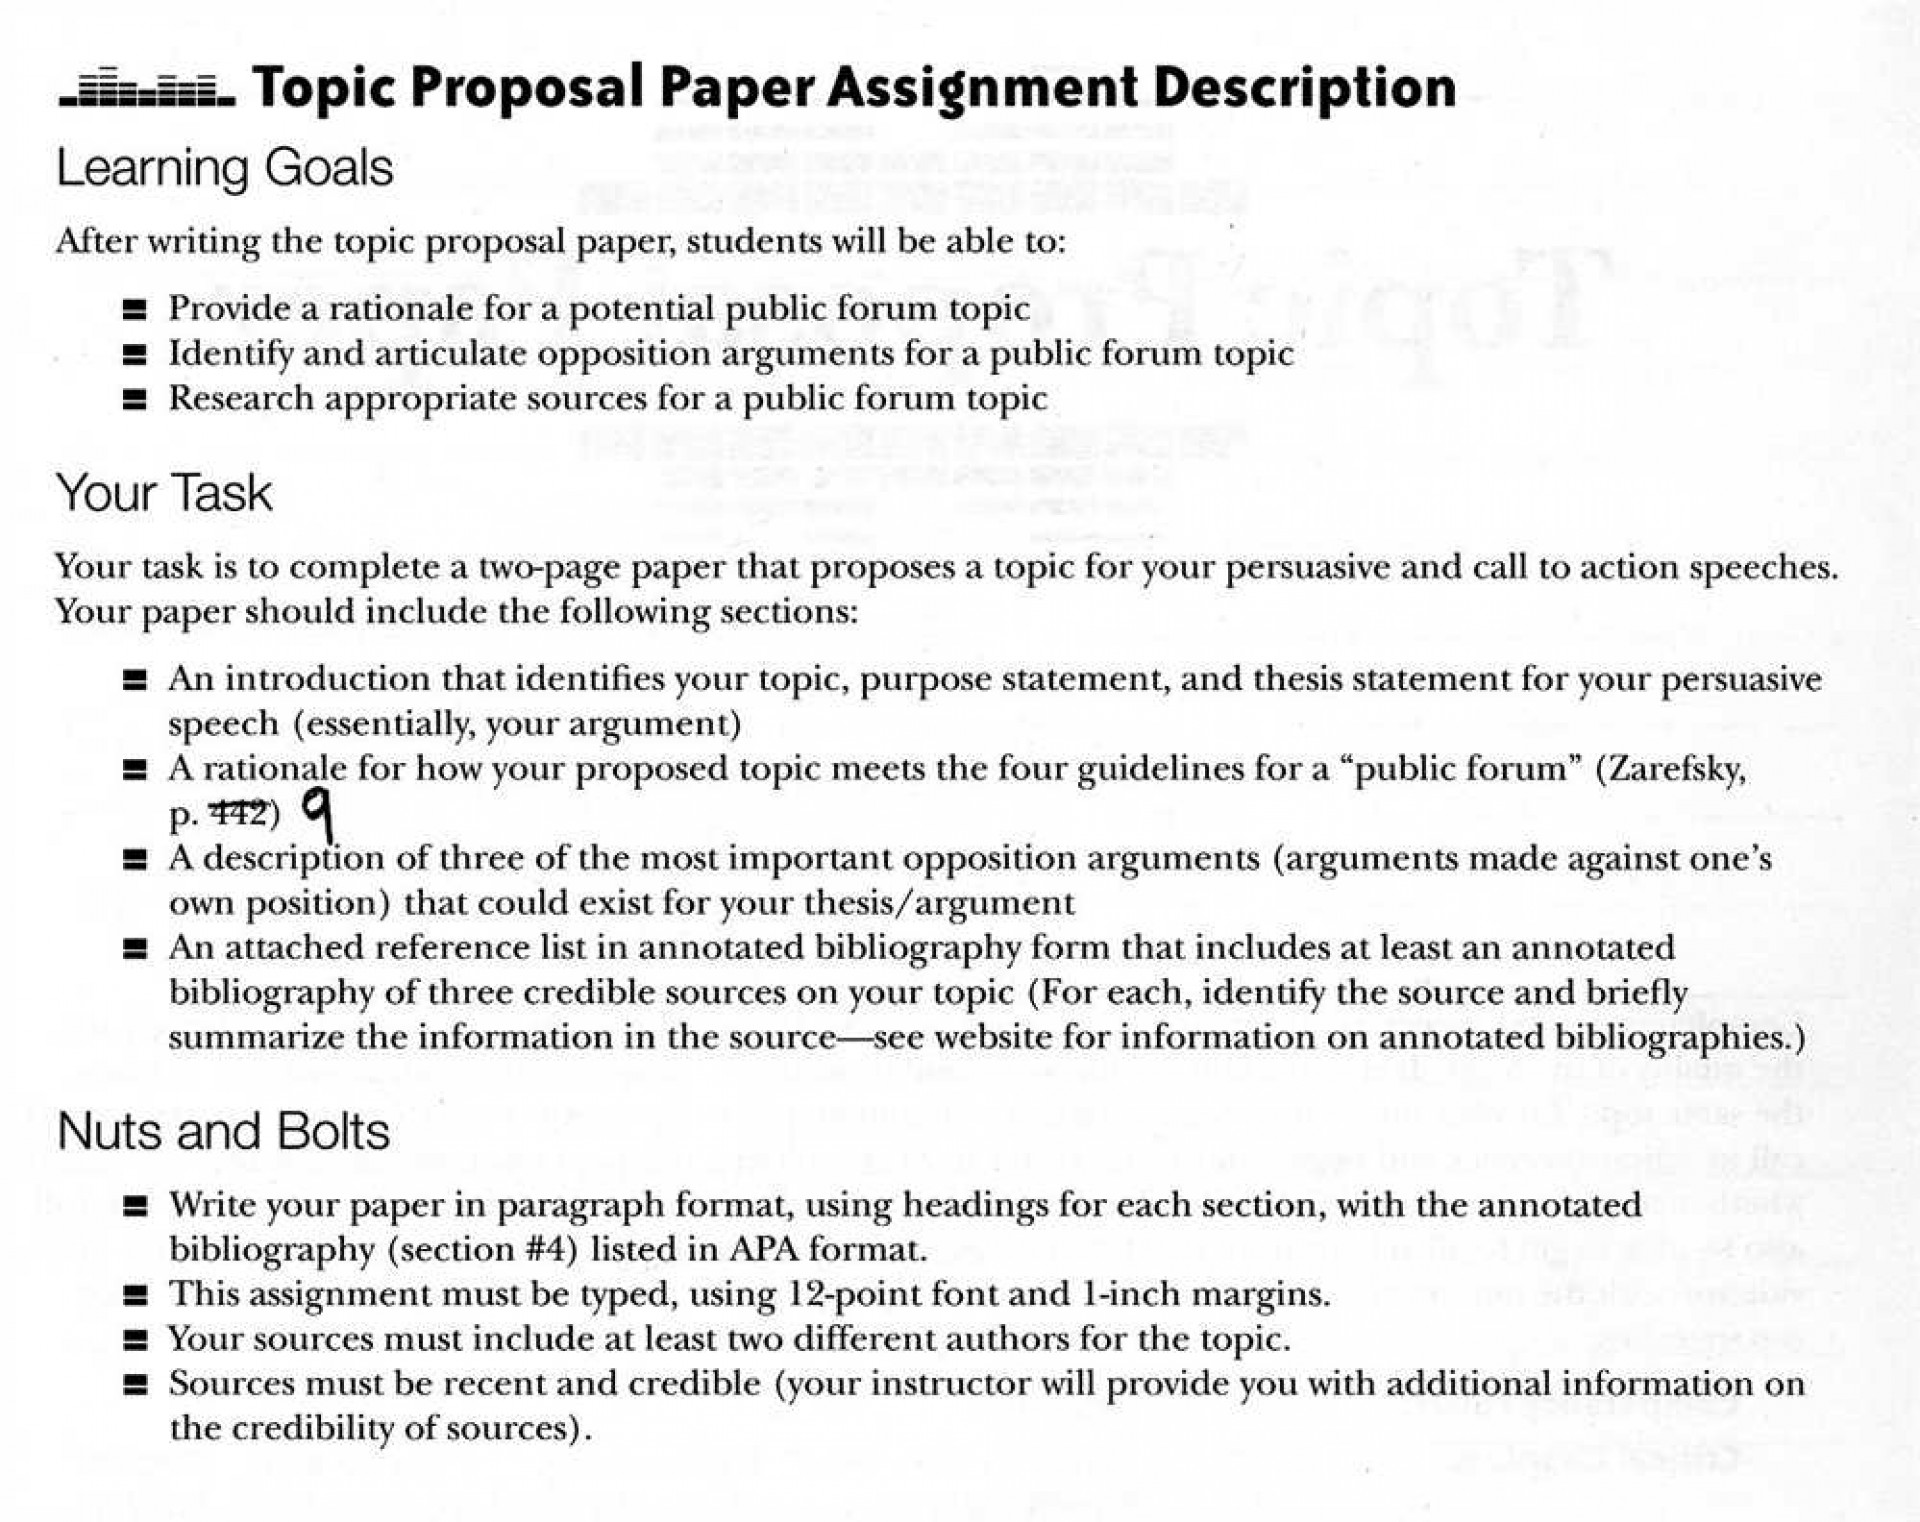 010 Stages Of Literature Review Marketing Project New Jersey Mfa Coolve Essay Topics Proposal Fun Interesting For Middle School Best College High Students Funny Example Beautiful Argumentative 2017 The Most Popular List 1920